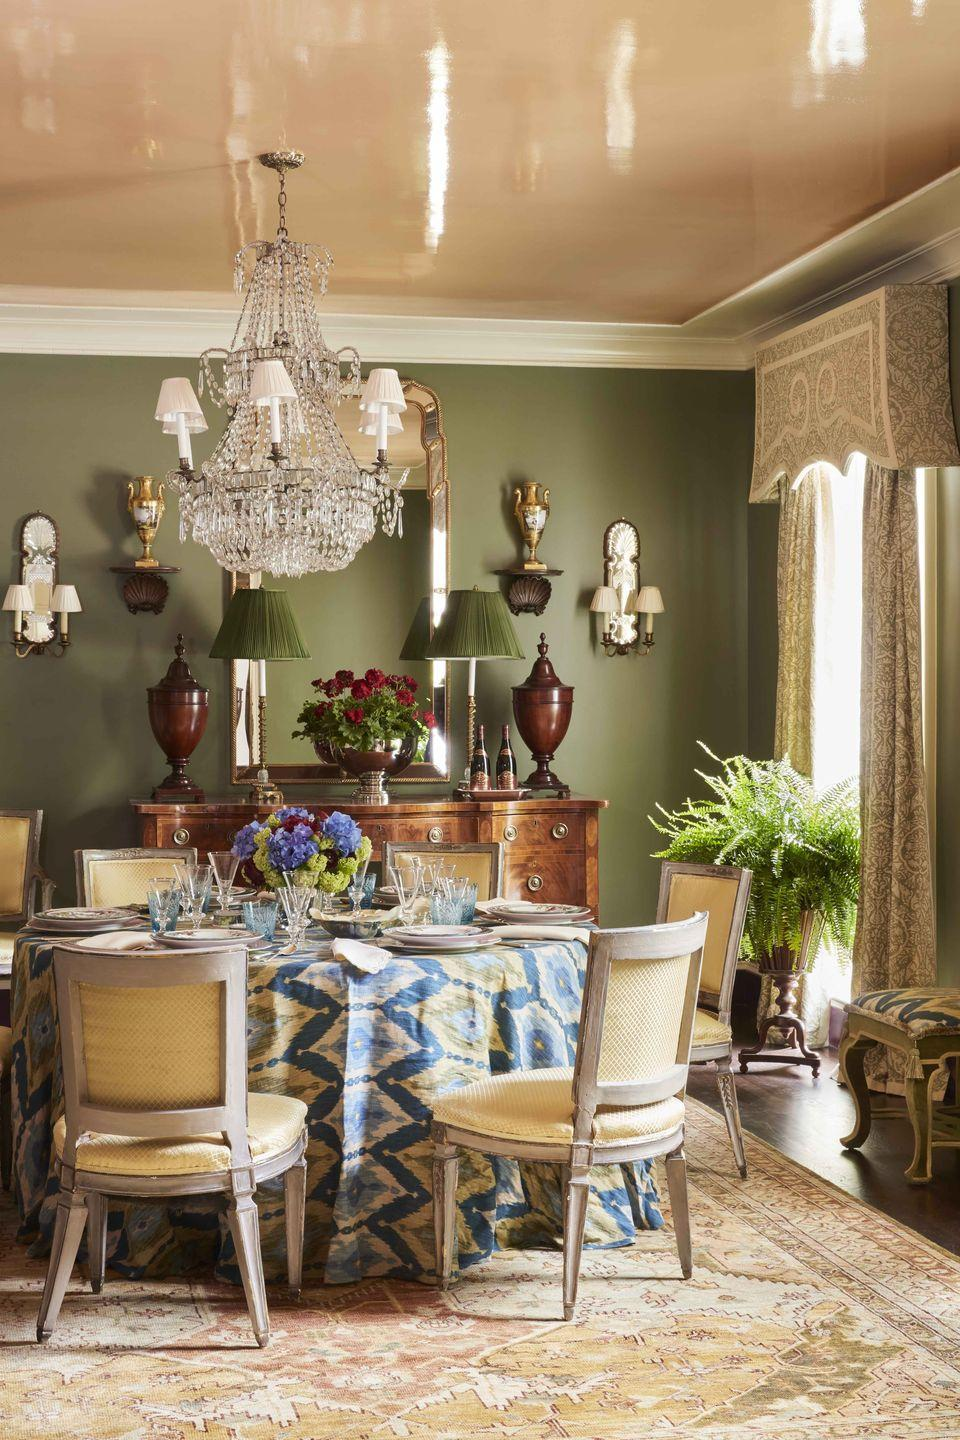 """<p>The apricot lacquered ceiling of designer <a href=""""https://danielledrollins.com"""" rel=""""nofollow noopener"""" target=""""_blank"""" data-ylk=""""slk:Danielle Rollins's"""" class=""""link rapid-noclick-resp"""">Danielle Rollins's</a> Atlanta dining room casts a flattering glow. The walls are painted <a href=""""https://www.farrow-ball.com/en-us"""" rel=""""nofollow noopener"""" target=""""_blank"""" data-ylk=""""slk:Farrow & Ball's"""" class=""""link rapid-noclick-resp"""">Farrow & Ball's</a> silvery Ball Green, and the curtains are in a <a href=""""https://fortuny.com"""" rel=""""nofollow noopener"""" target=""""_blank"""" data-ylk=""""slk:Fortuny"""" class=""""link rapid-noclick-resp"""">Fortuny</a> fabric. </p>"""